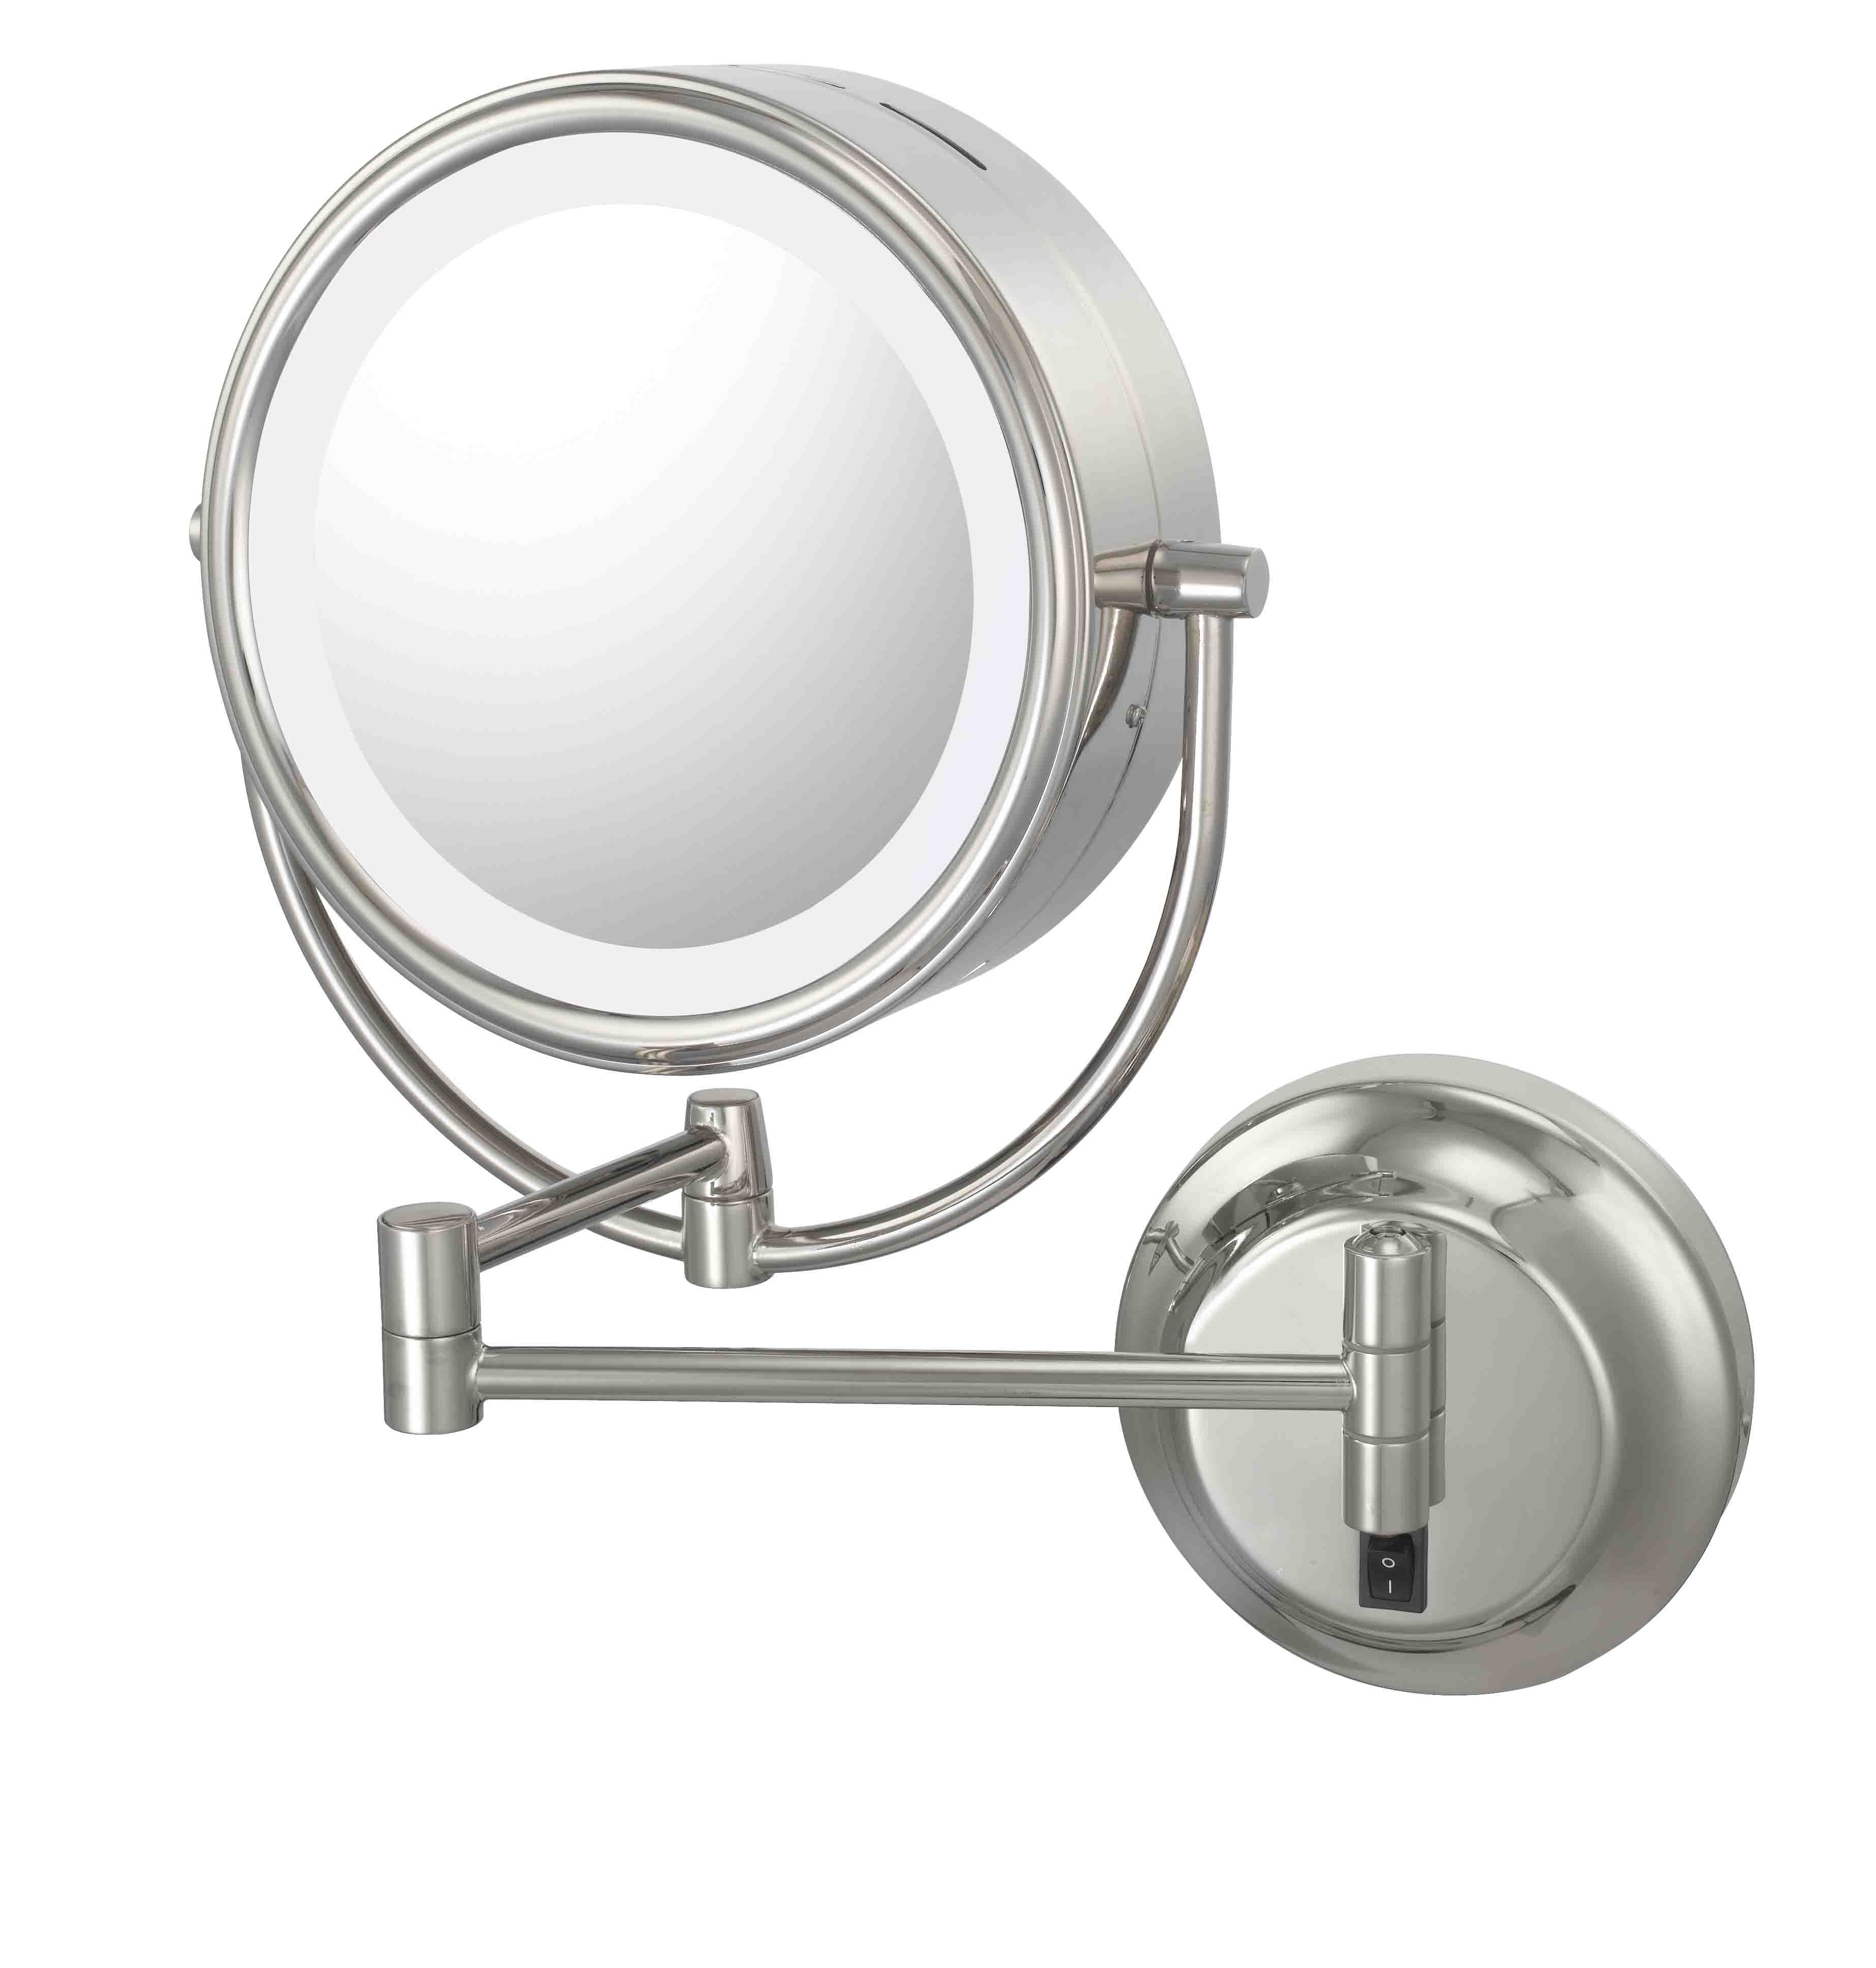 magnifying modo mirror illuminated smile with light bath lighting